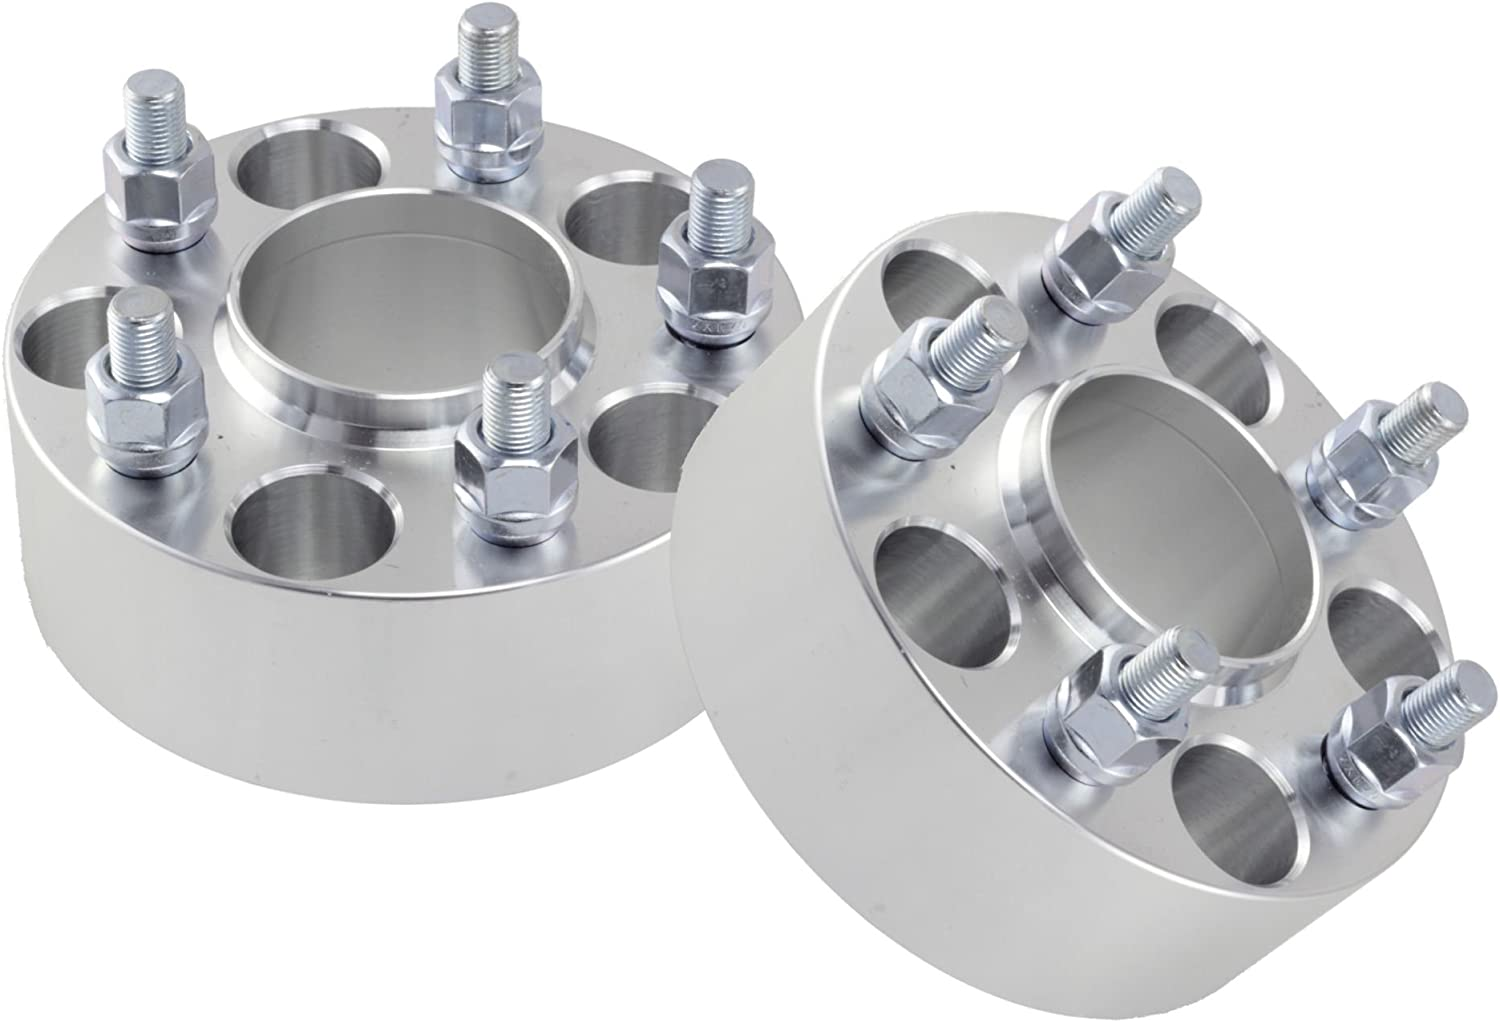 Wheel Spacers fits Chevy Camaro Corvette S10 Blazer GMC Sonoma S15 Jimmy 25mm 2pcs 1 inch Hubcentric 70.5 Hub